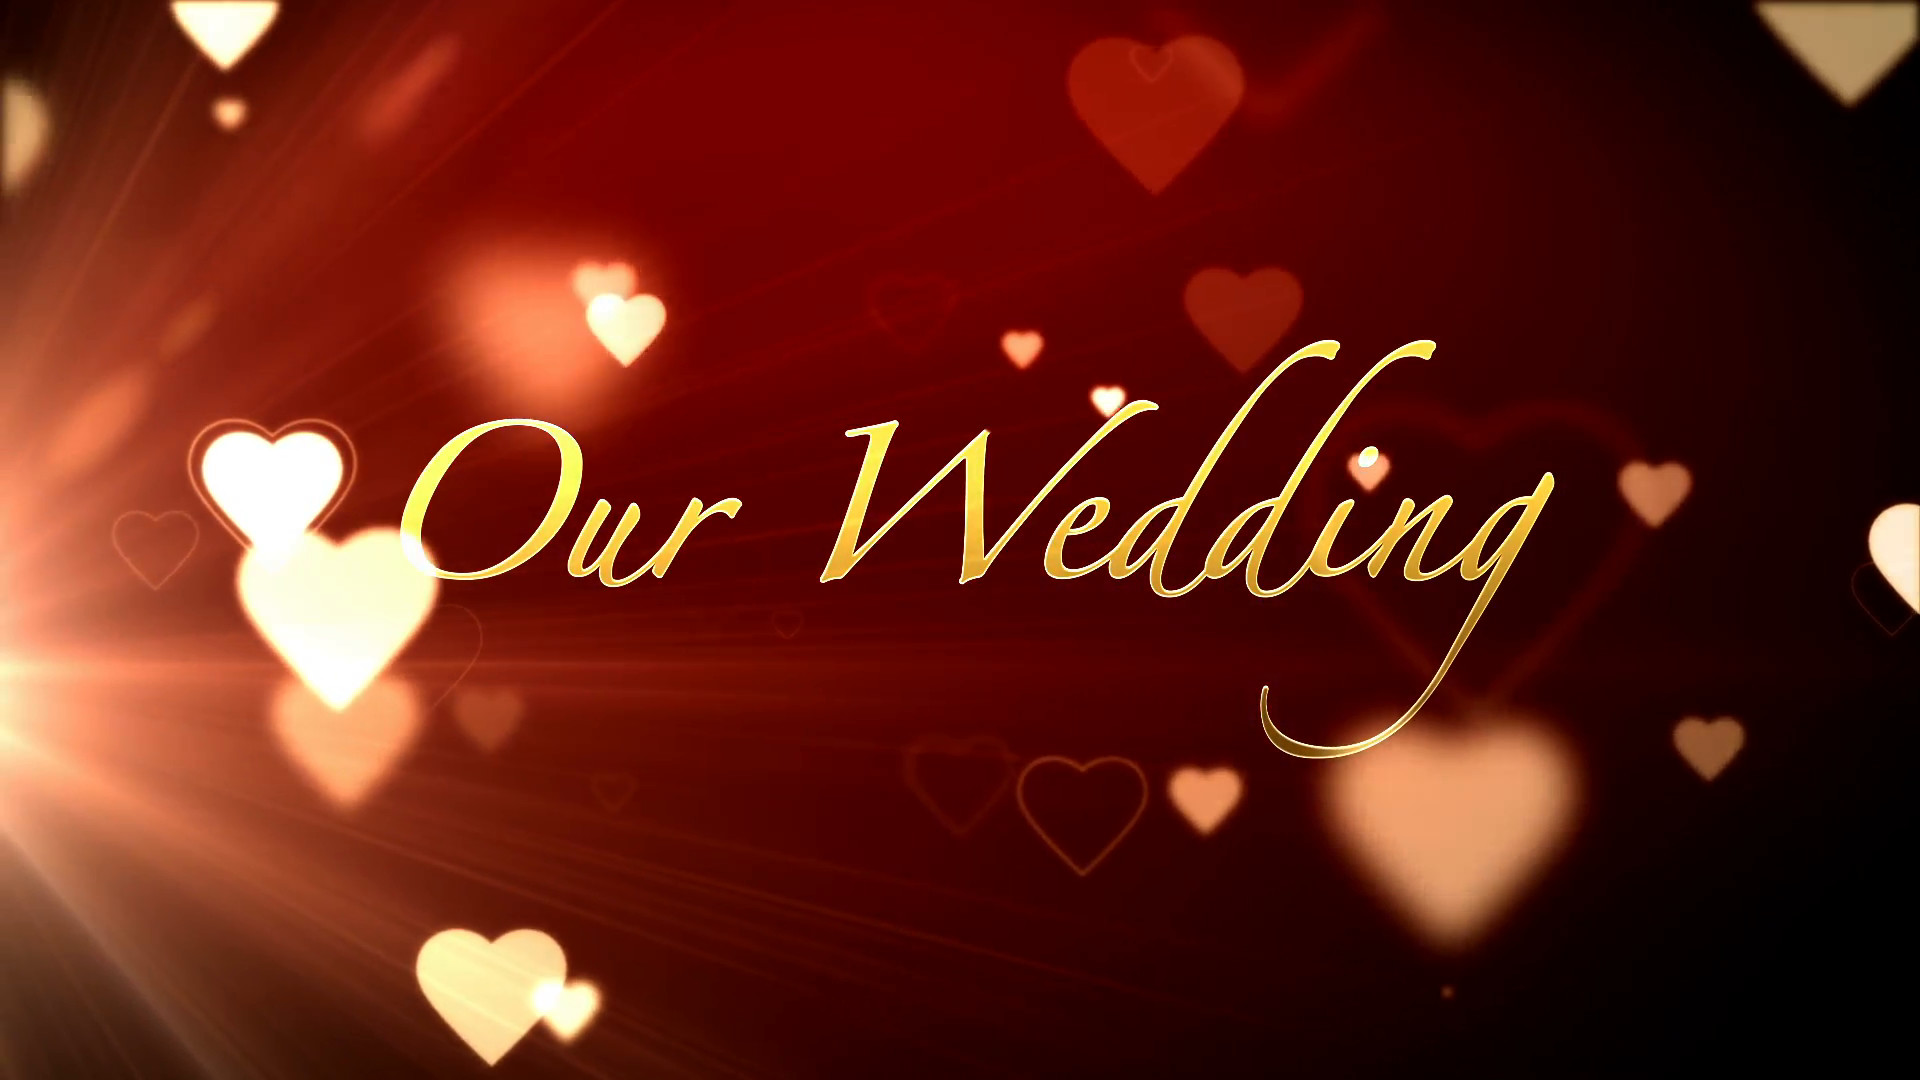 Married Couple Wallpaper With Quotes Wedding Background Images 60 Images